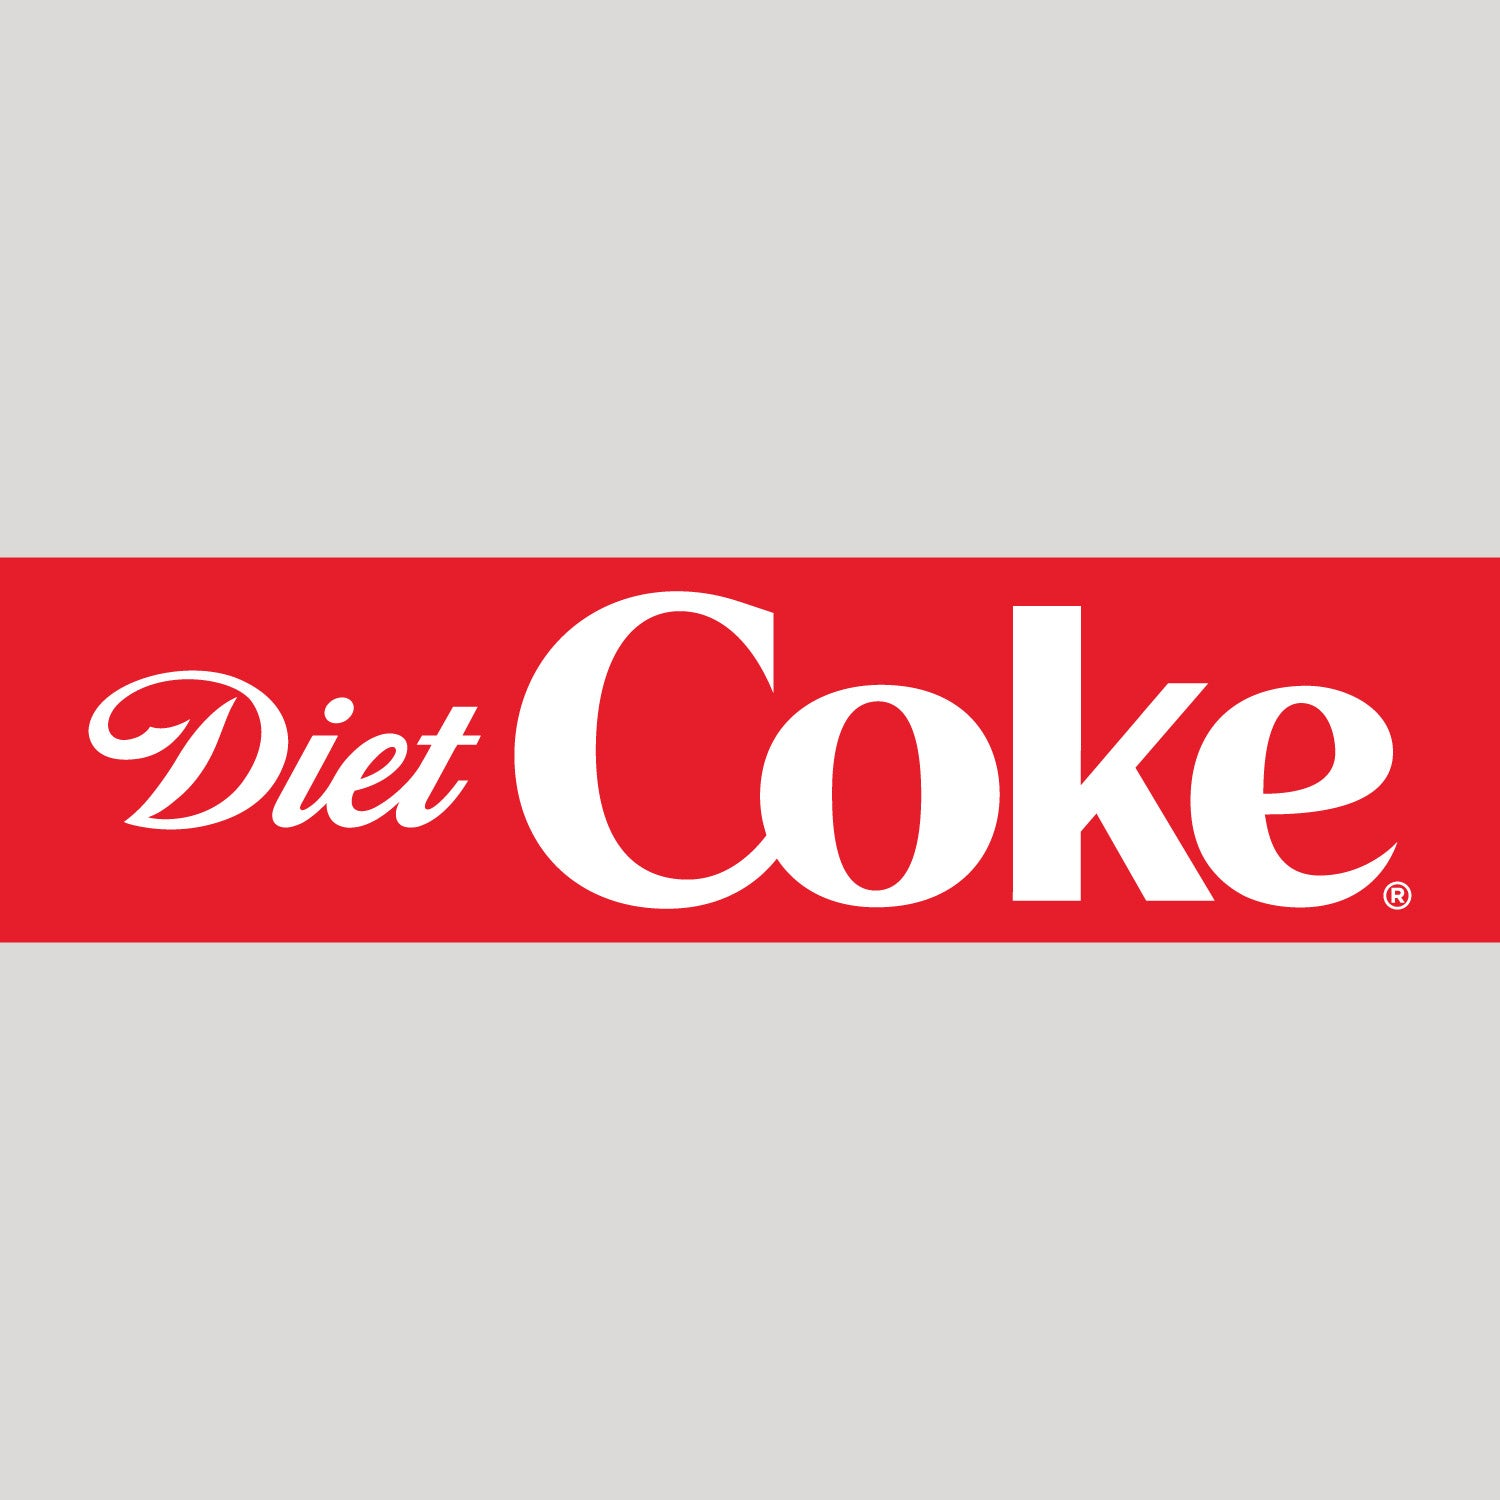 Diet Coke Logo.JPG